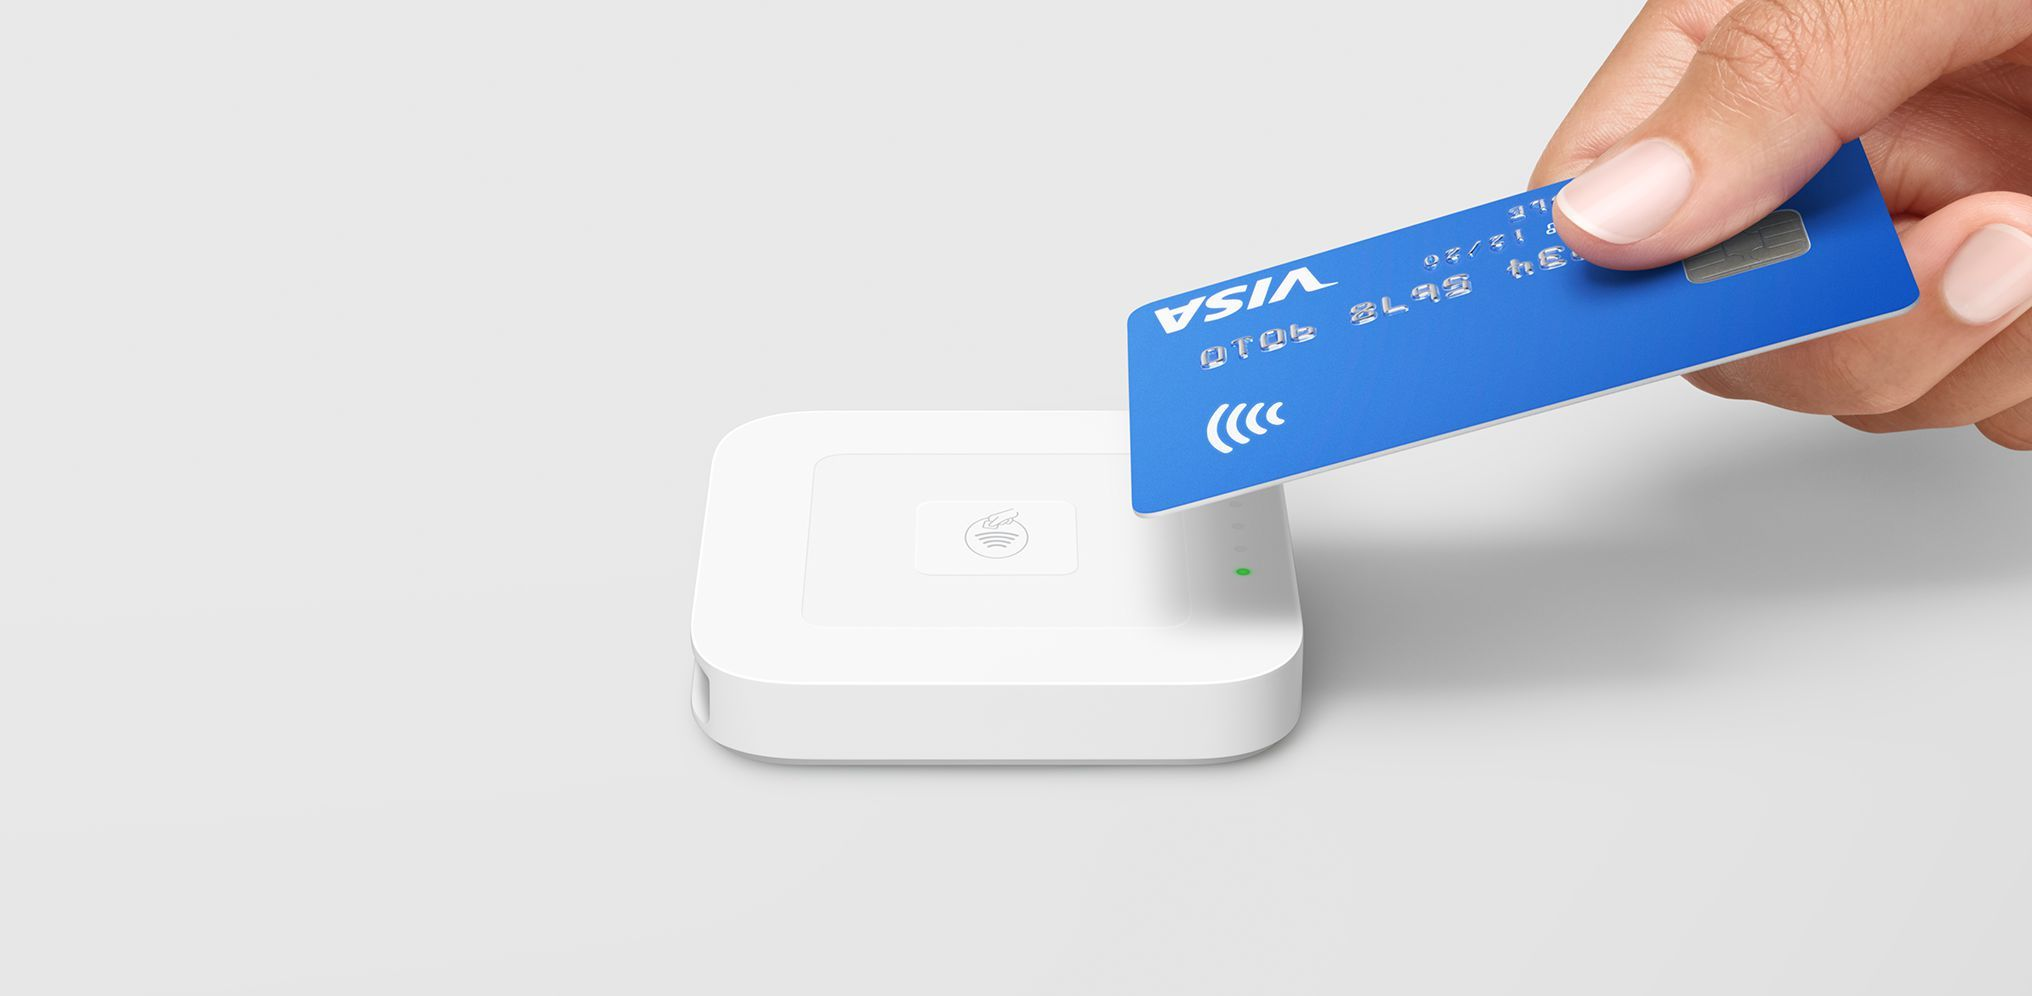 Square payment device